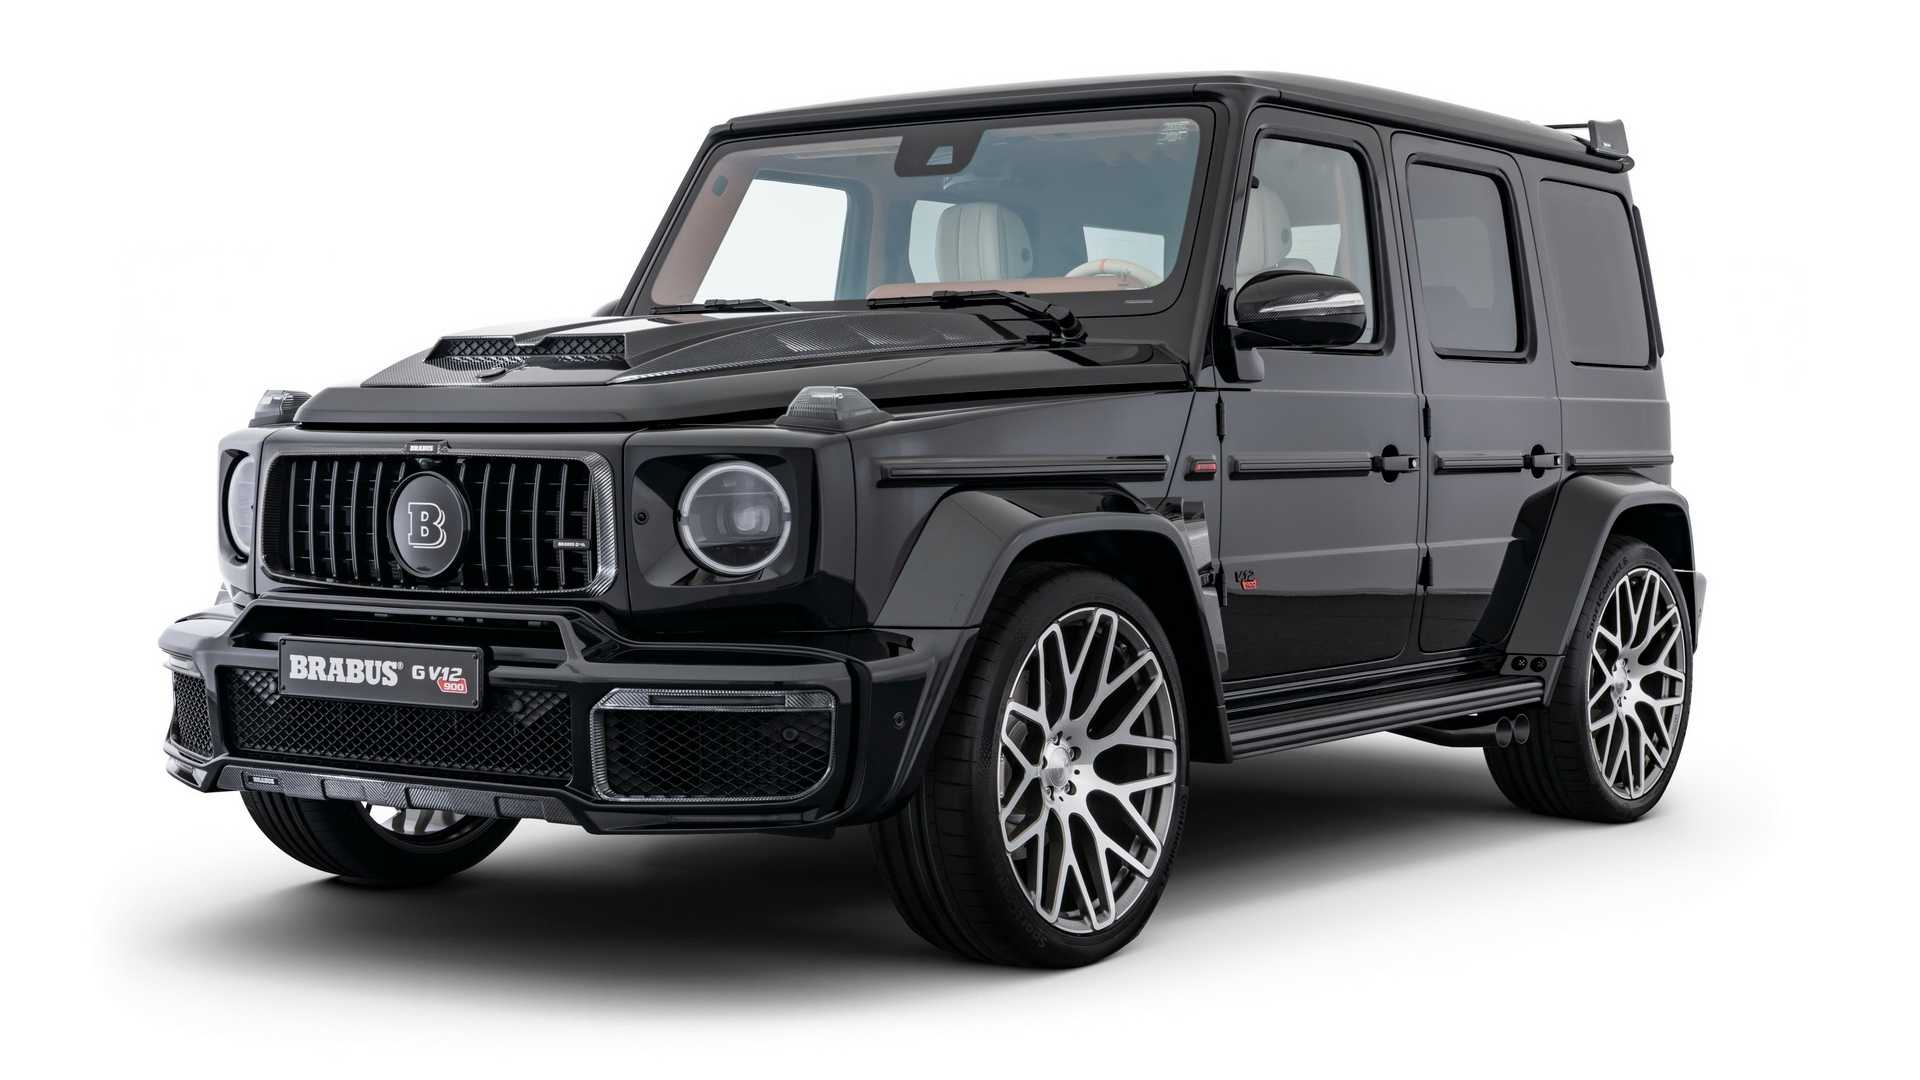 Brabus has come to the 2019 International Motor Show Germany (IAA Frankfurt) with a very special Mercedes G-Class, dubbed the 'G V12 900 One of Ten'. As you can guess, the production run will be kept down to 10 copies.